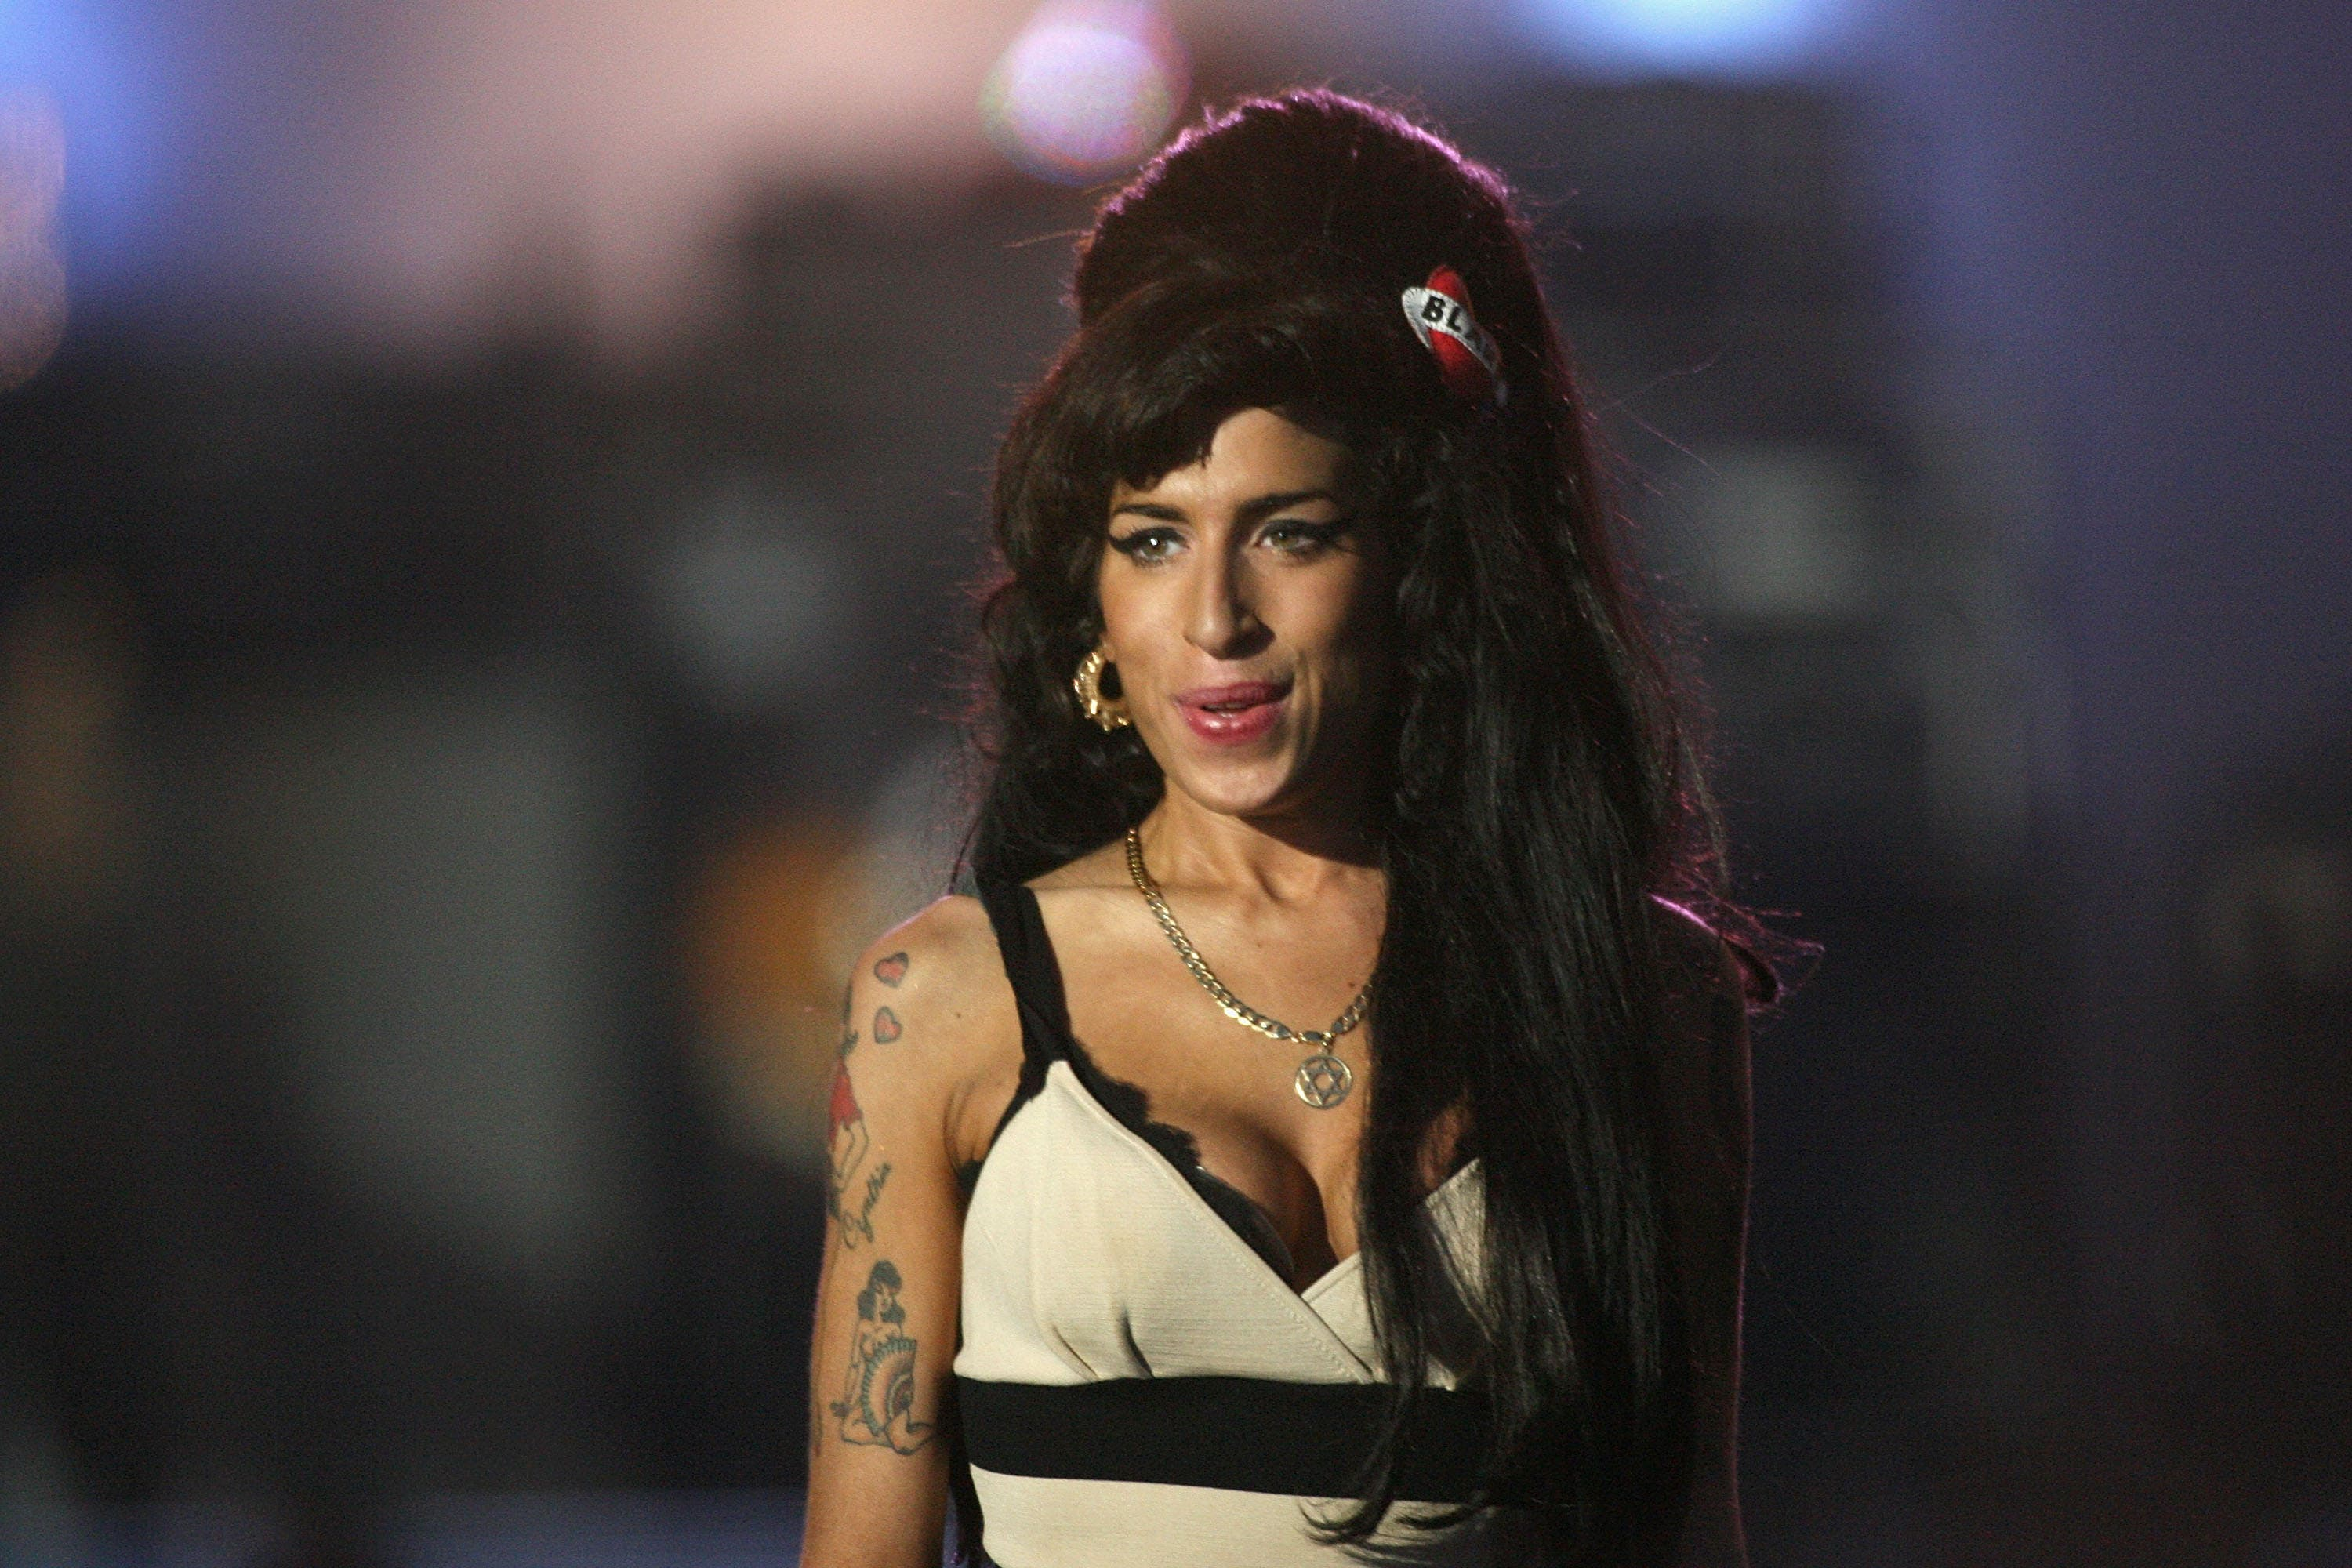 Amy Winehouse, a musical talent of today's generation, is dead at 27. She spent her artistic life drowning in the the sordid world of drugs & alcohol abuse, but left us some class act hits and albums as her young legacy.